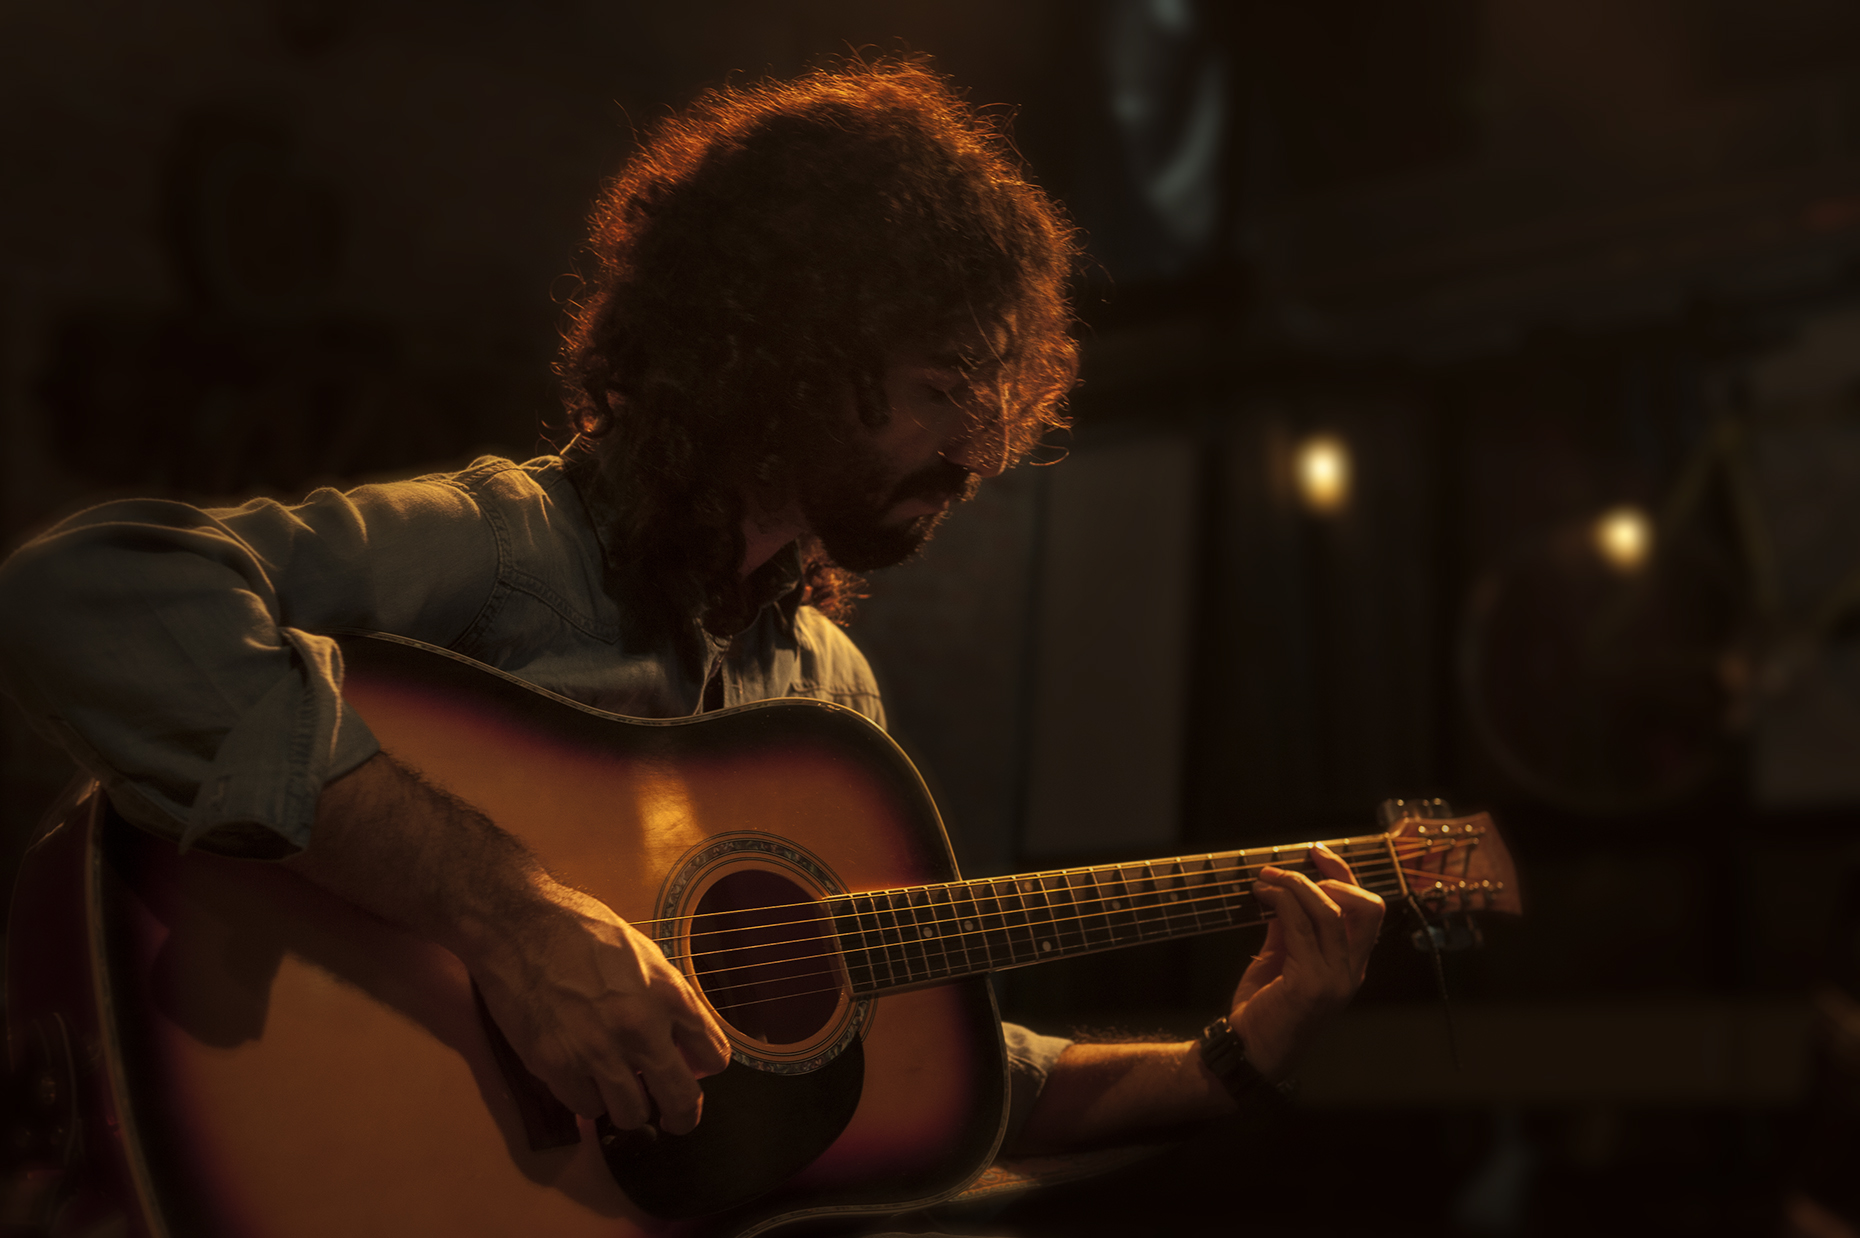 Portrait of a curly haired man playing guitar.